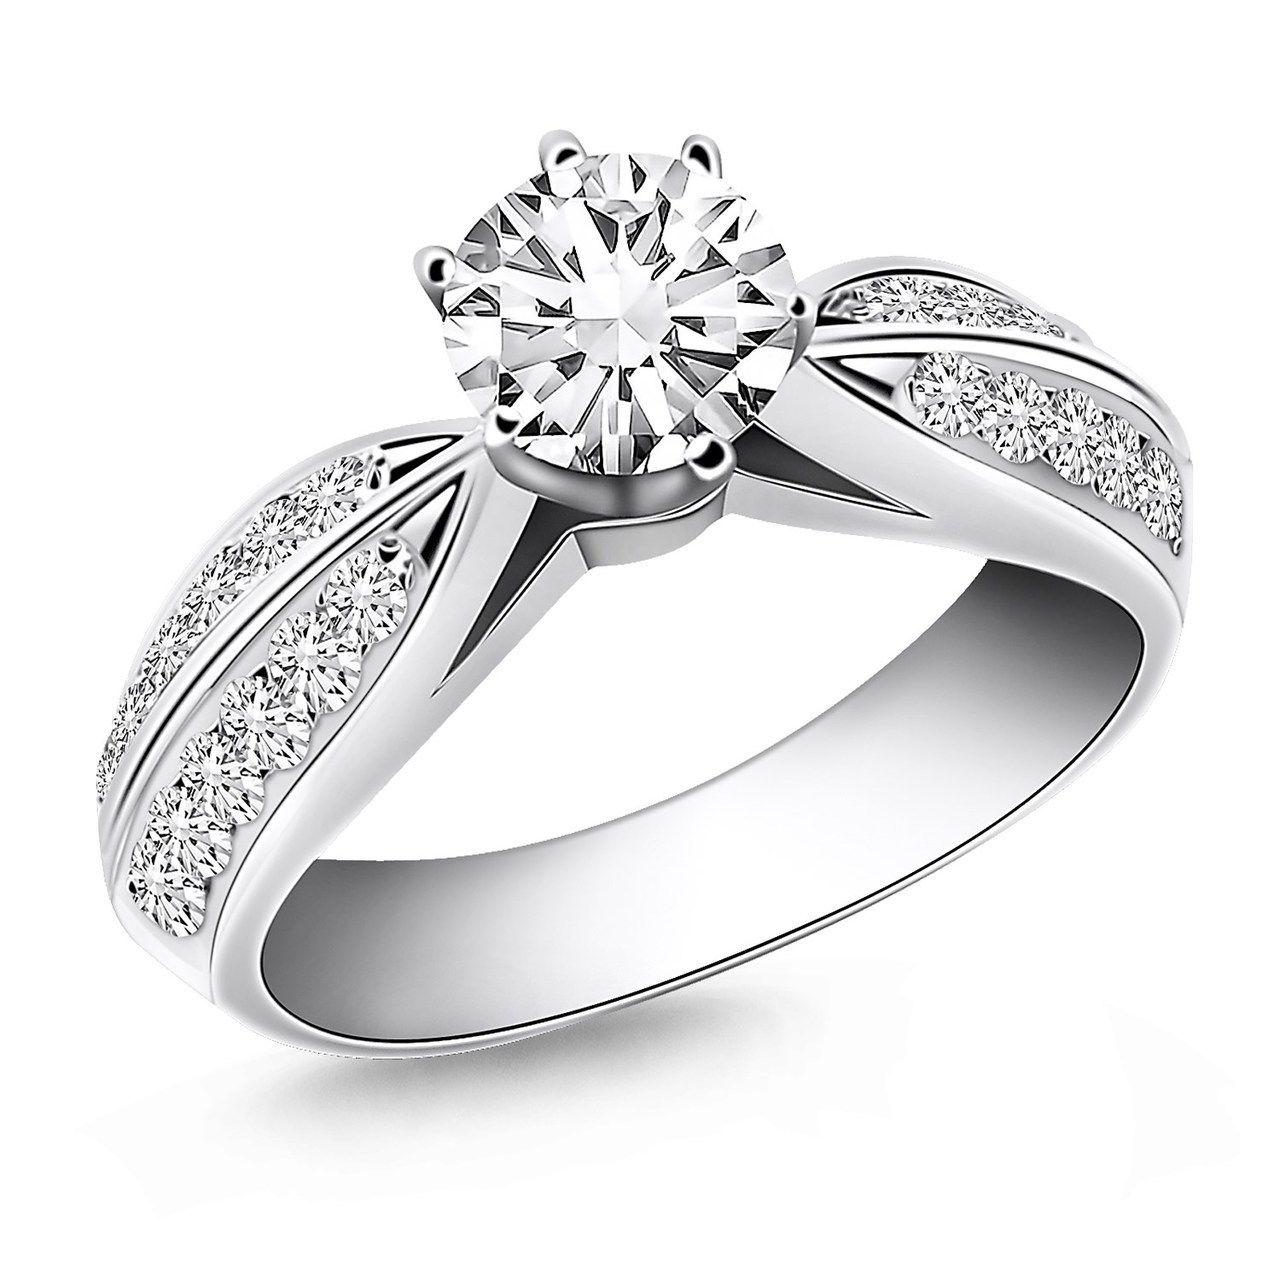 Cathedral Diamond Engagement Rings At Jjs Jewelry Box Black Friday 20